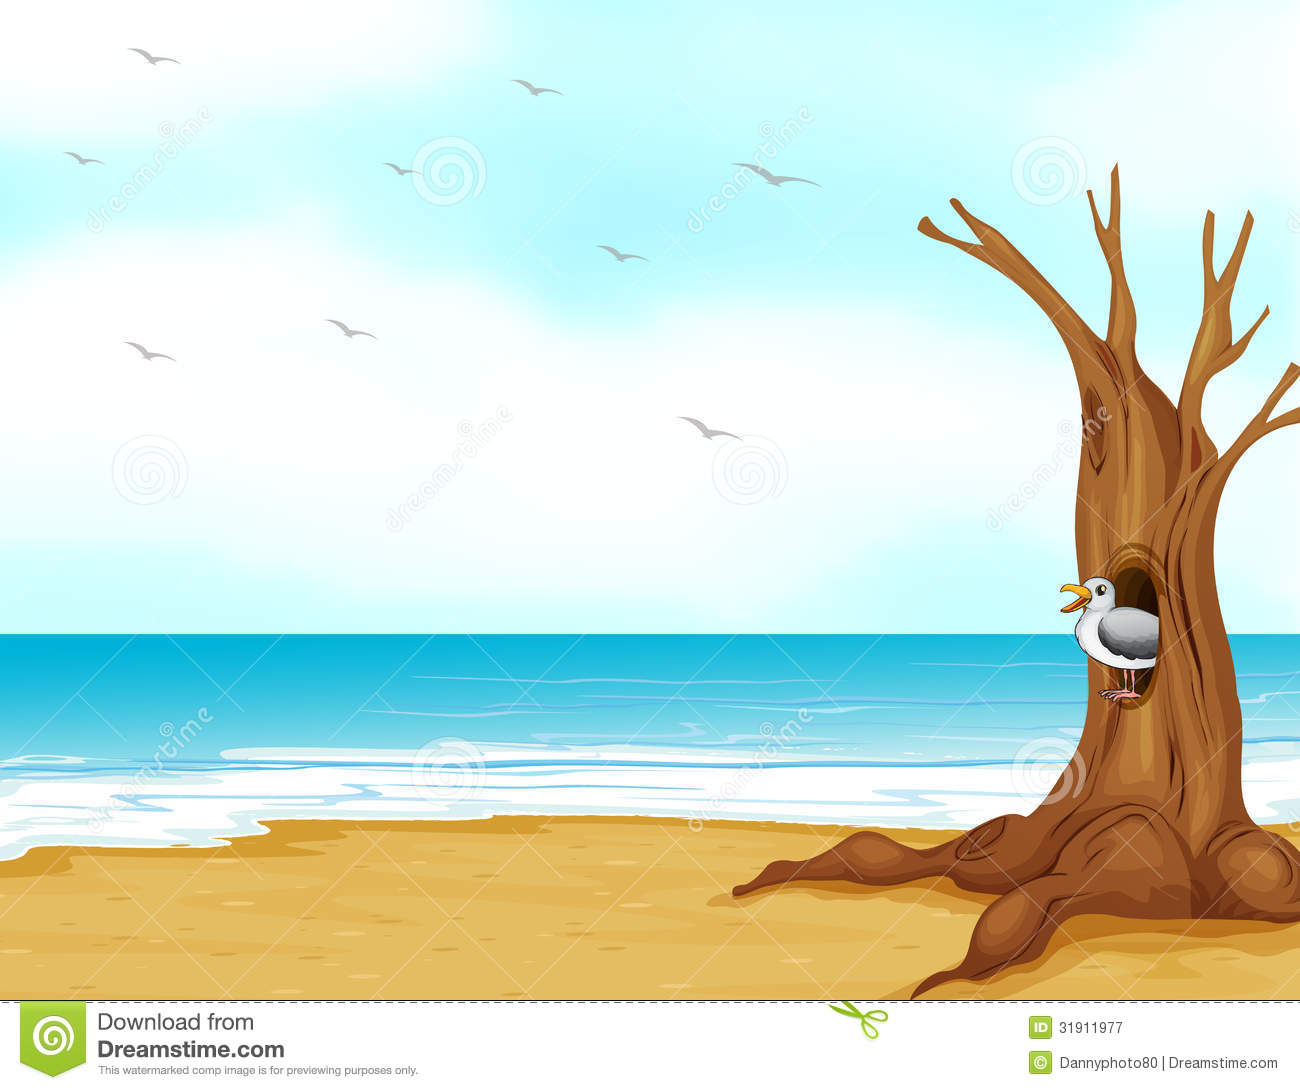 Seaside clipart seashore #1